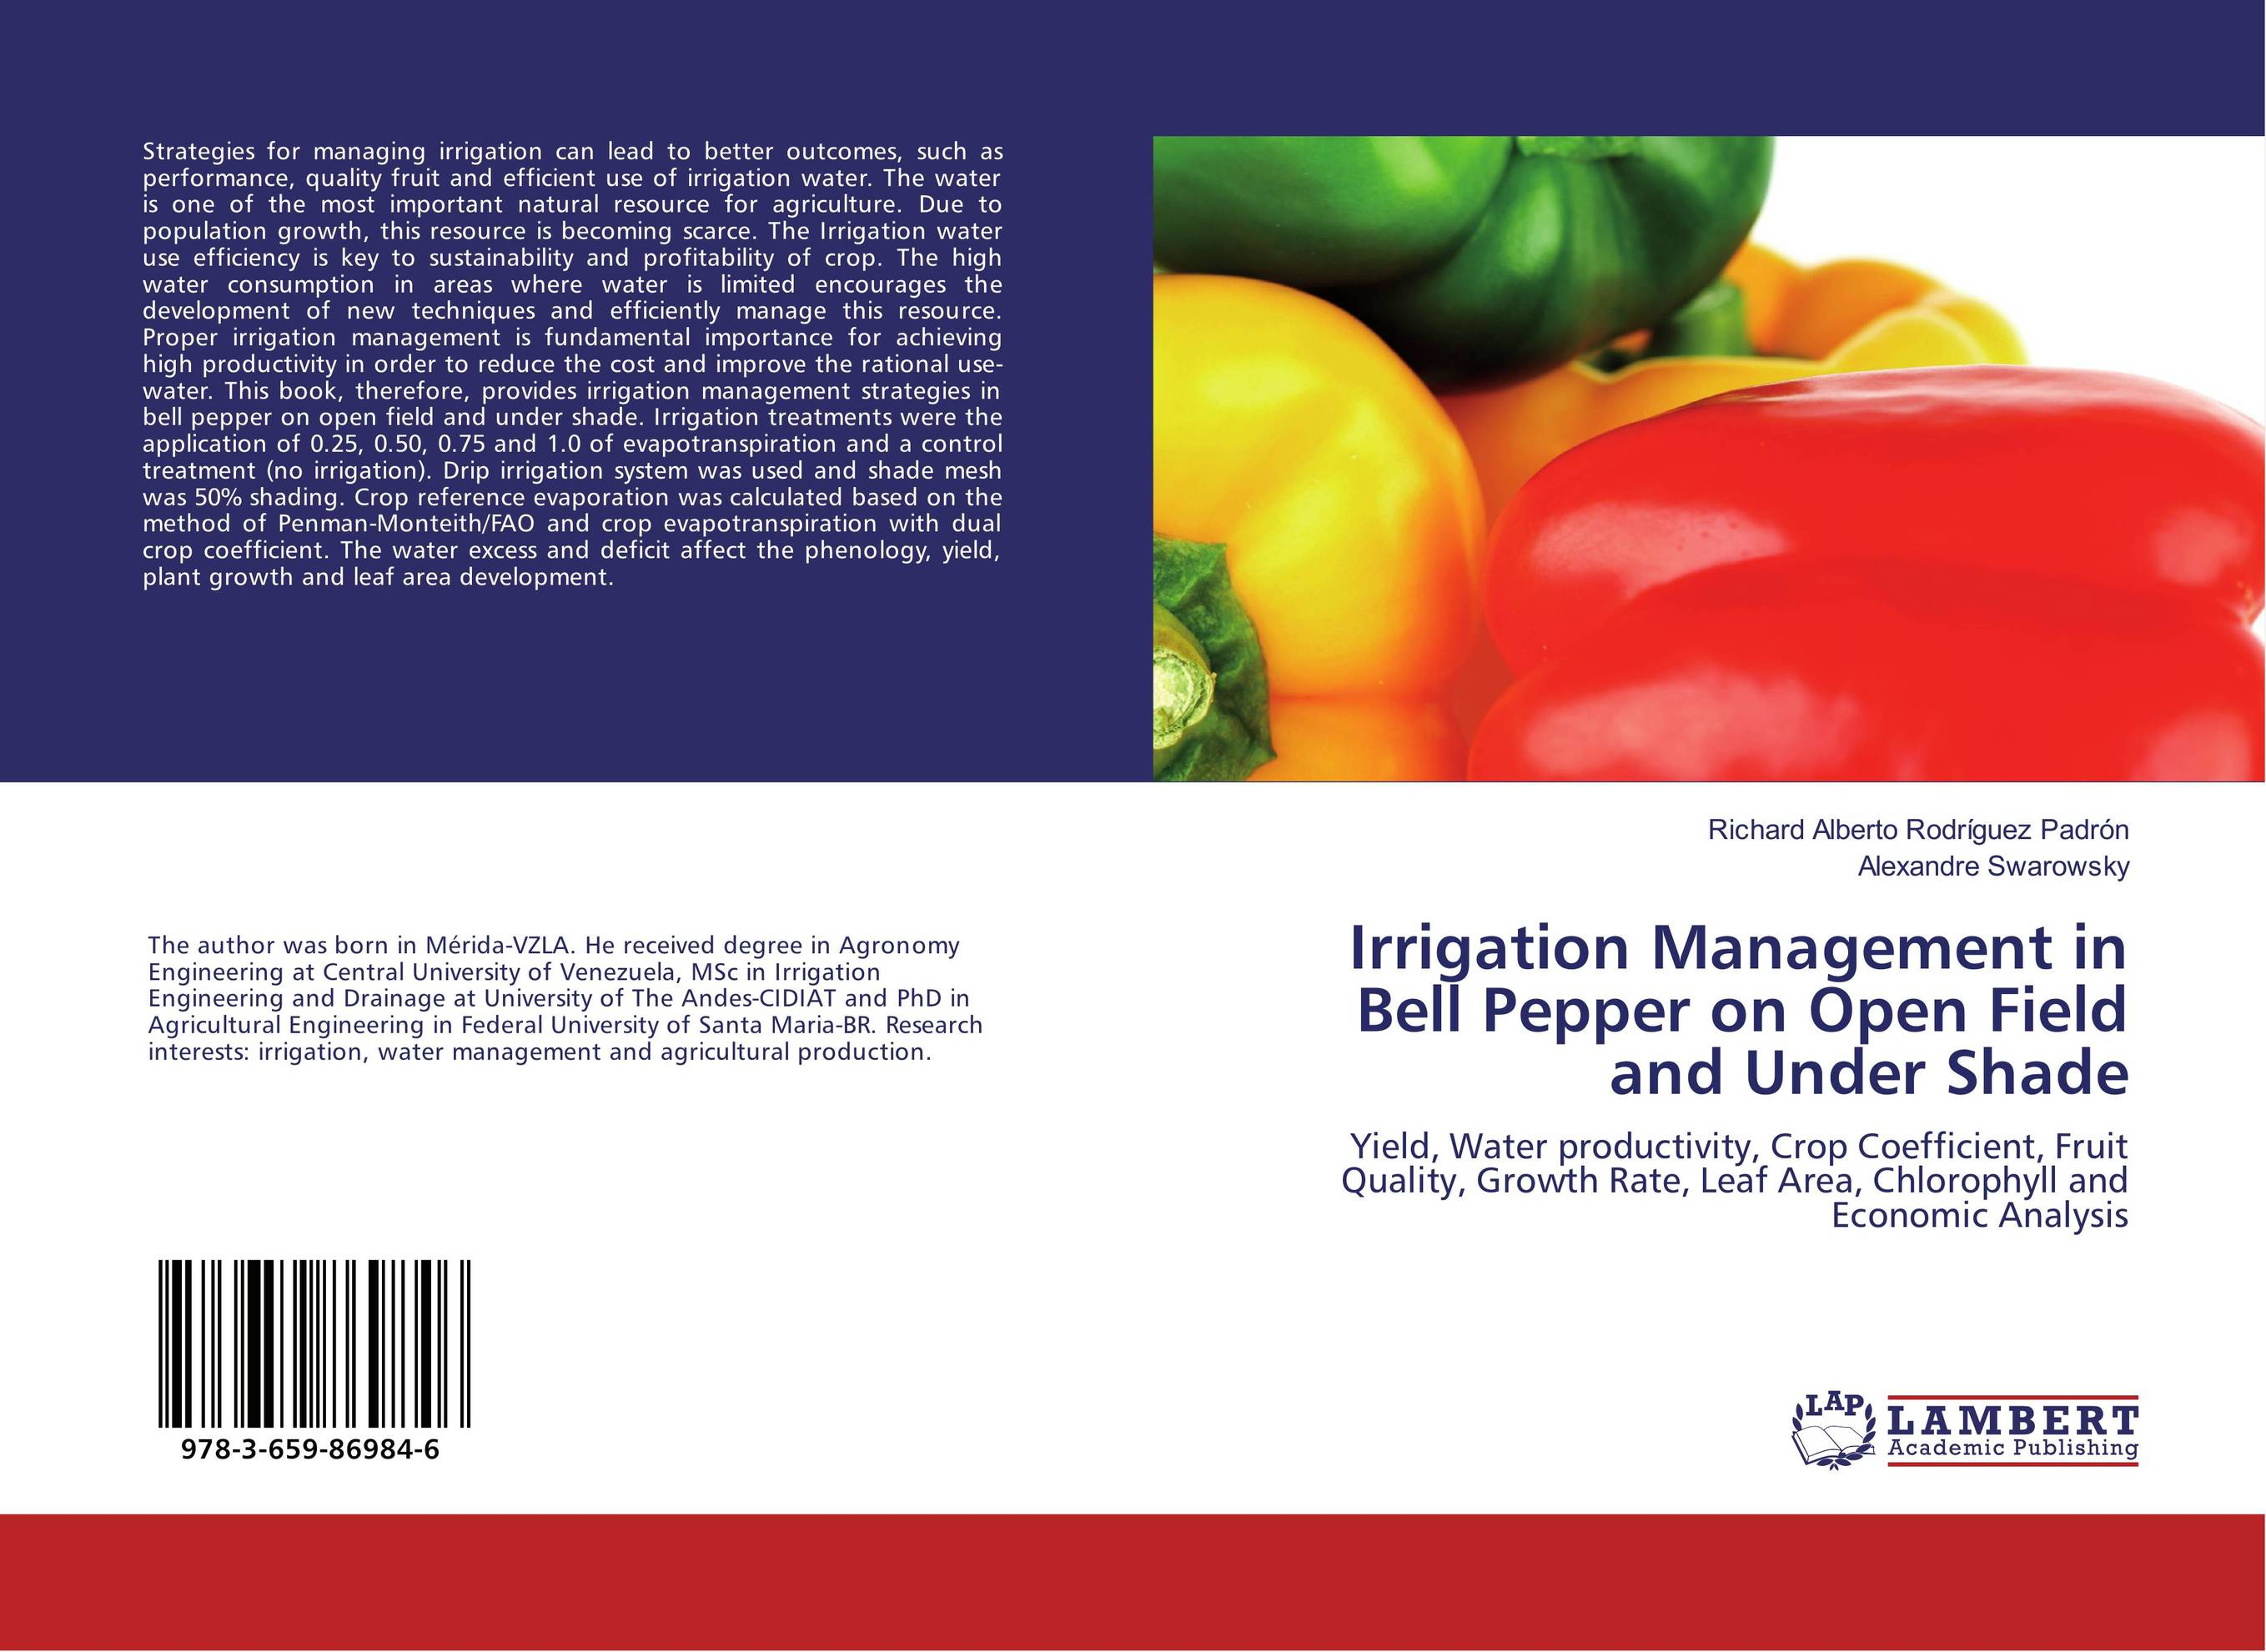 Irrigation Management in Bell Pepper on Open Field and Under Shade new oral irrigator dental floss care implement pressurre water flosser irrigation hygiene teeth cleaning